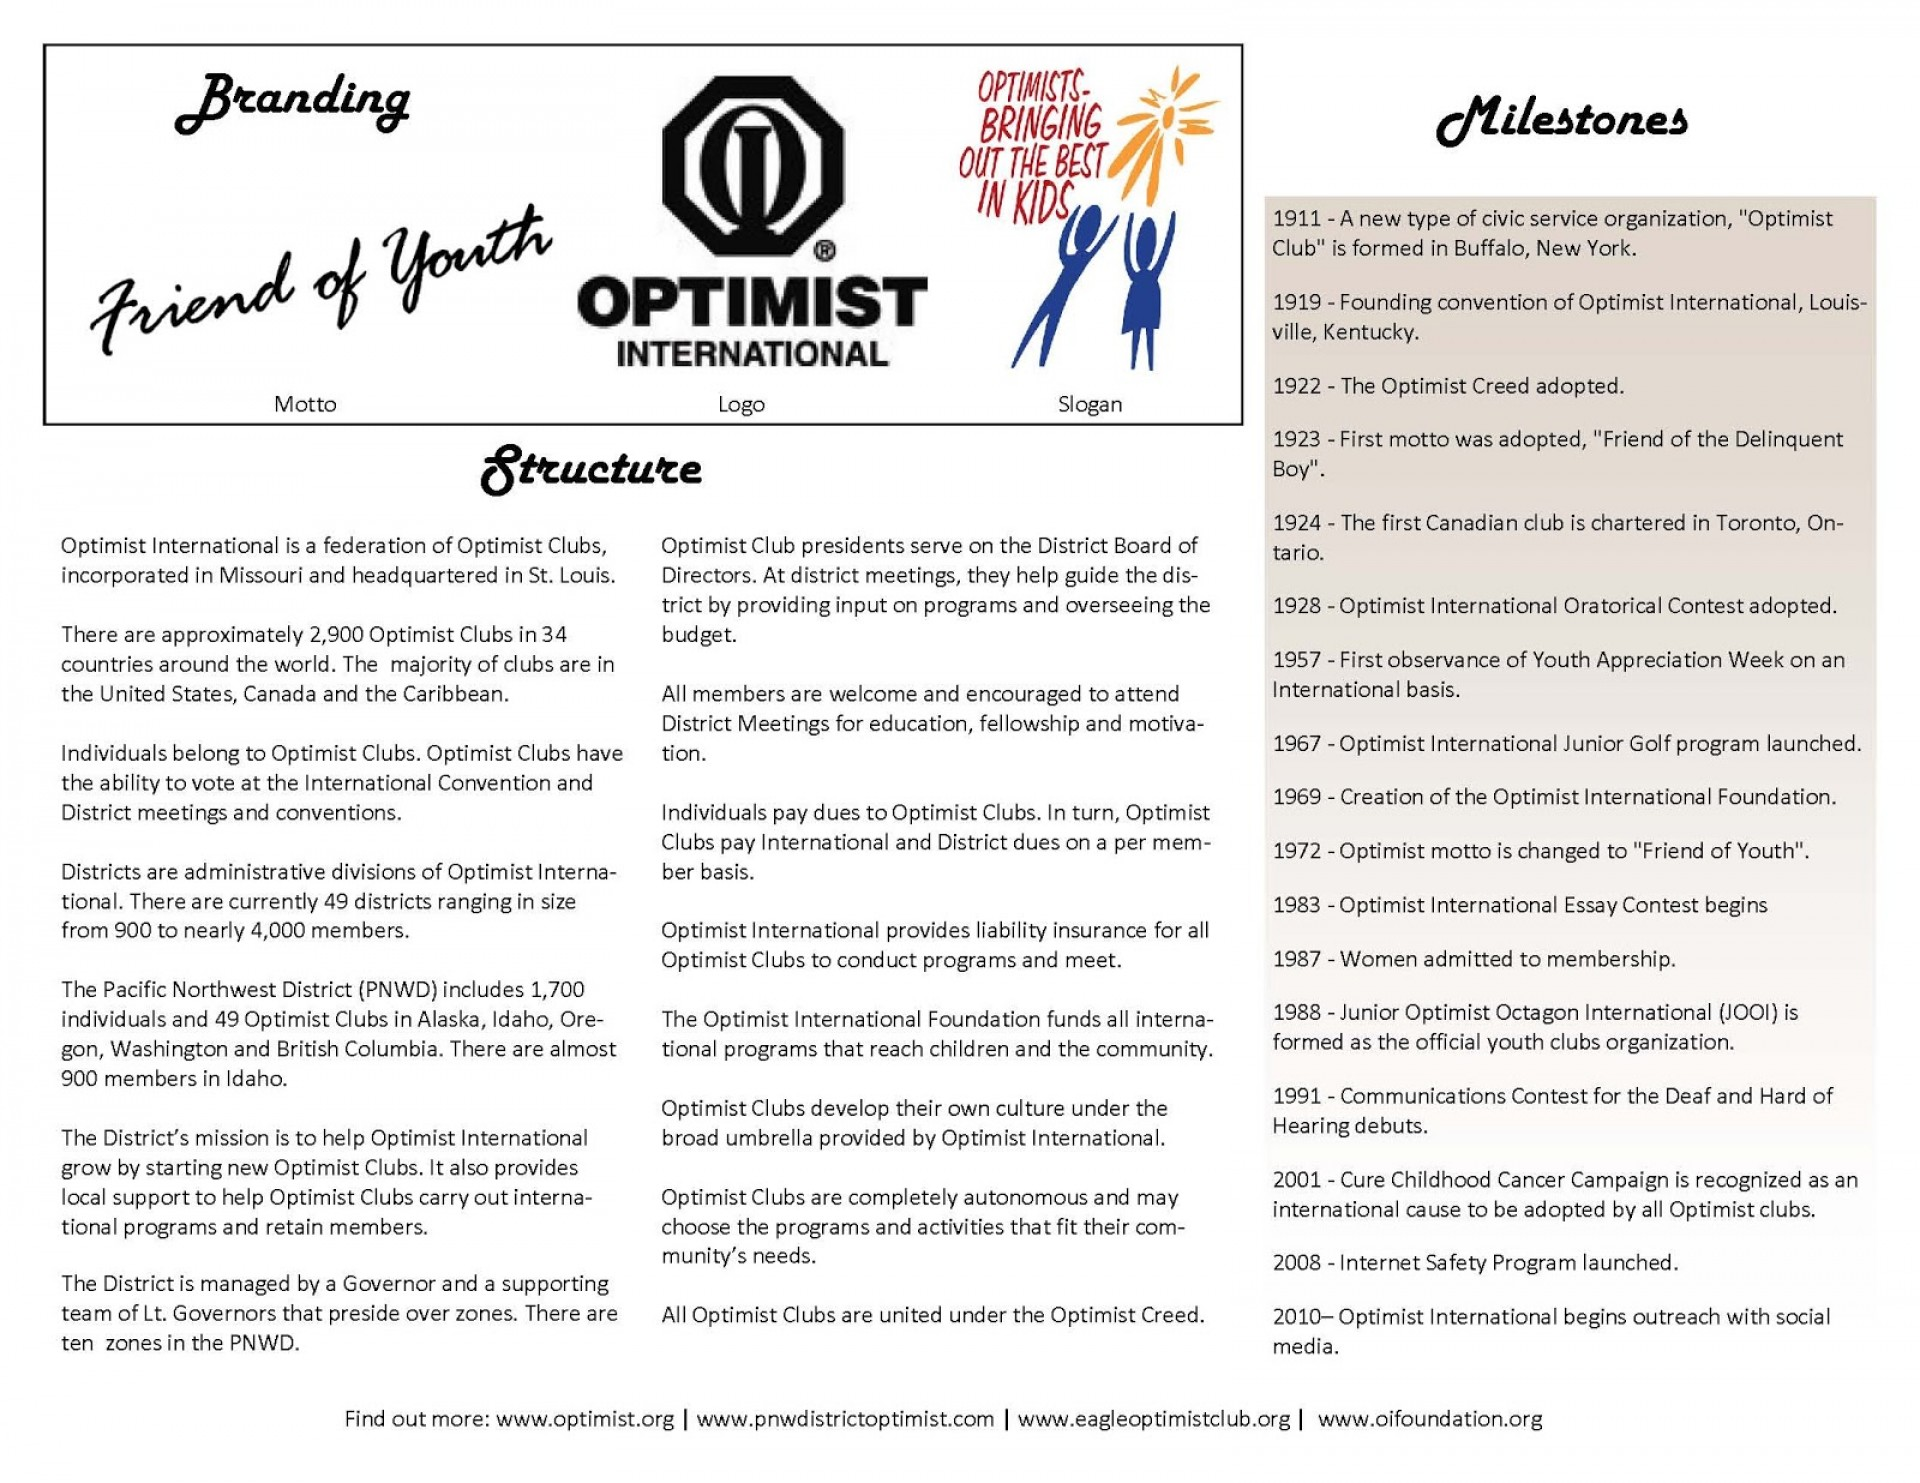 What Is Optimism Essay - Words | Bartleby